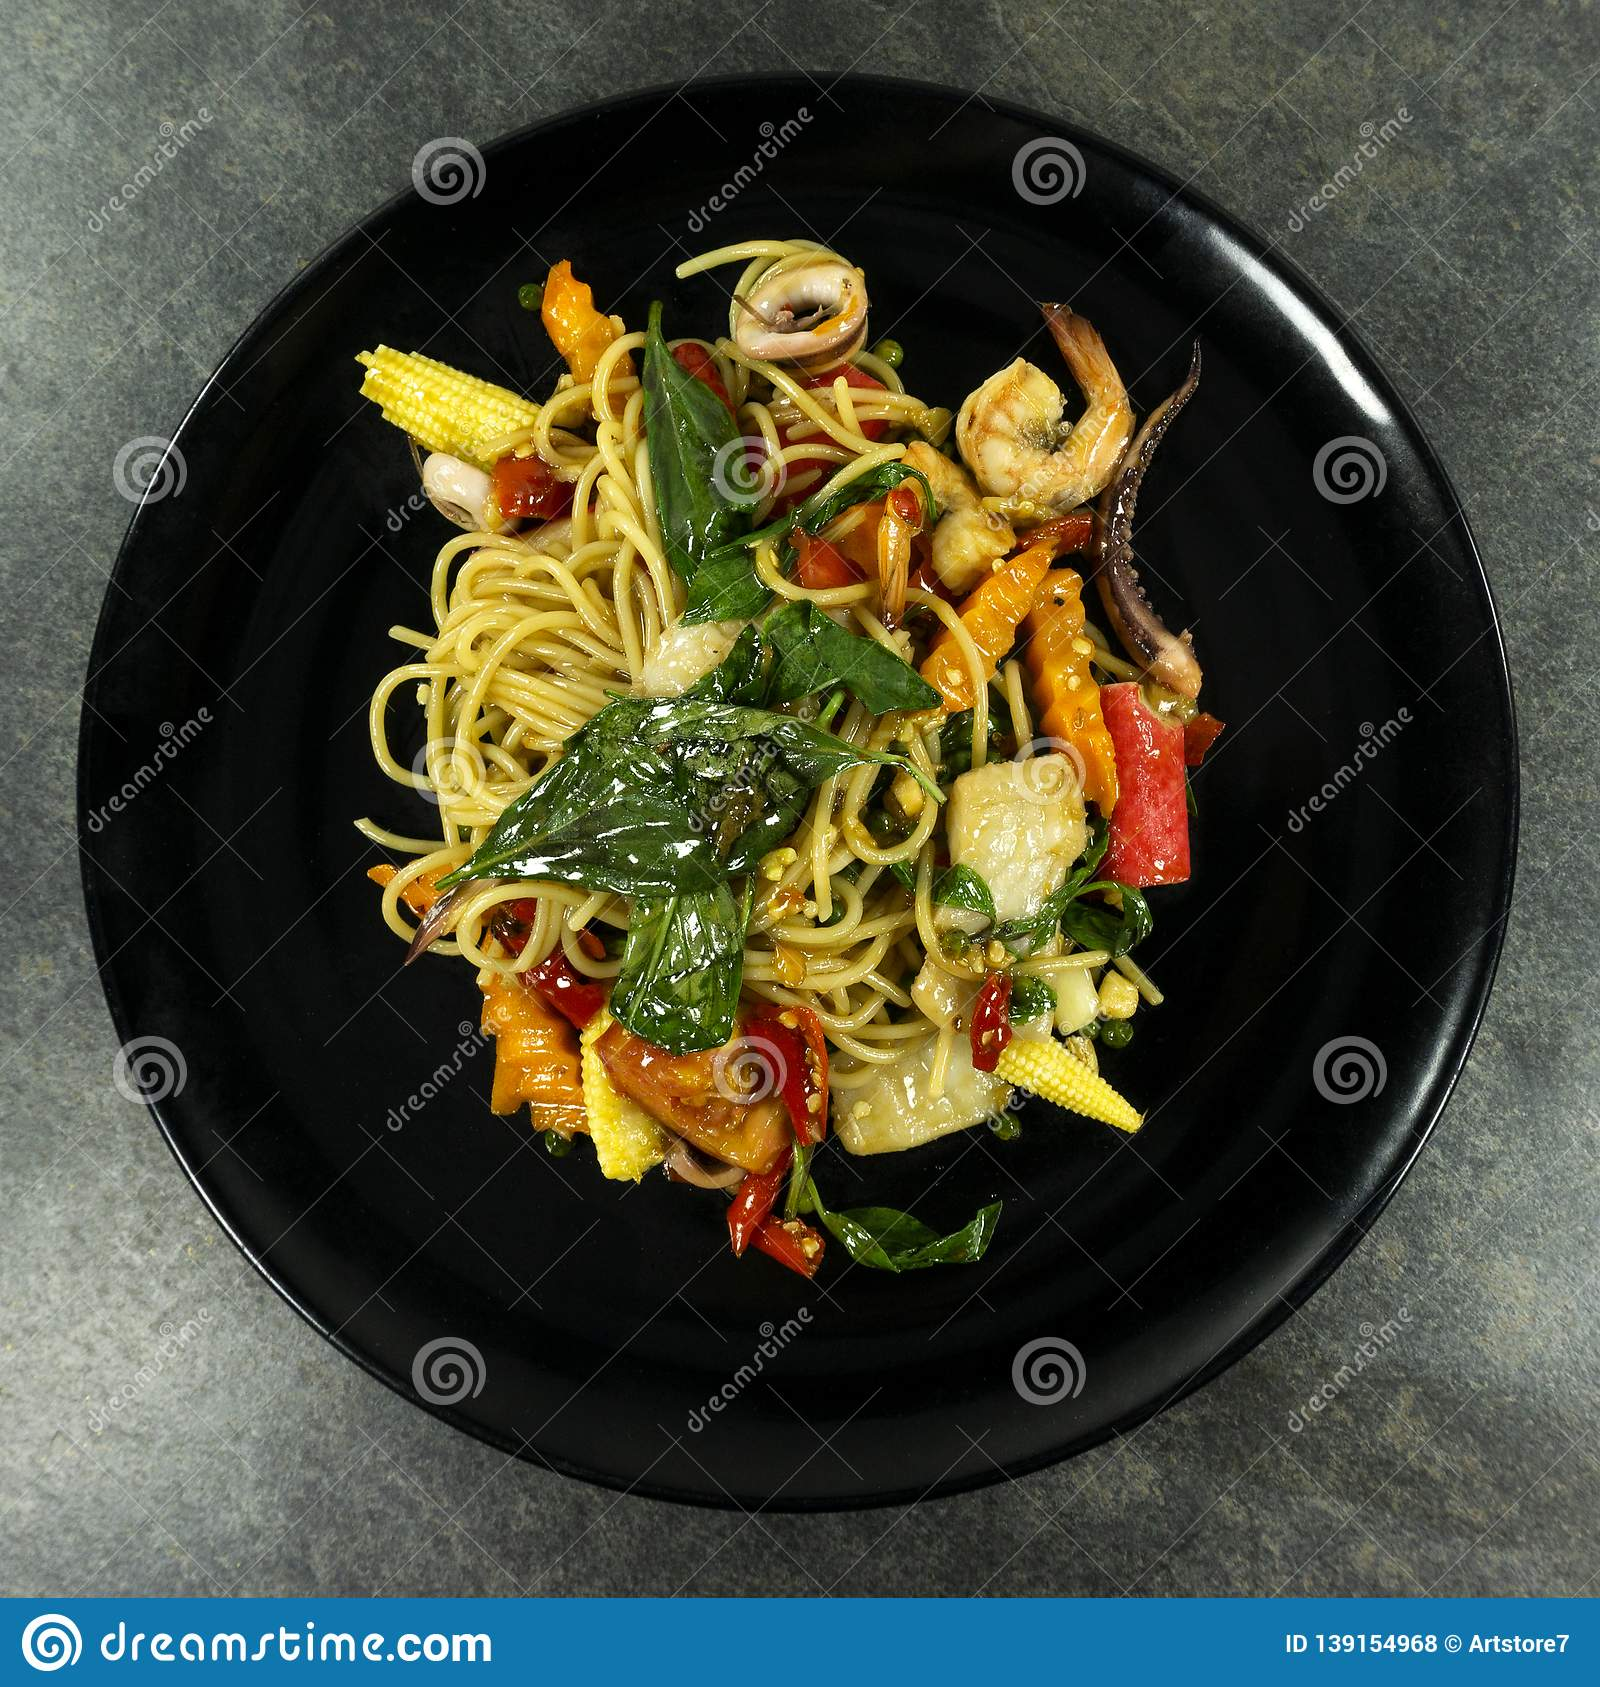 Spaghetti spicy seafood on stone floor table.